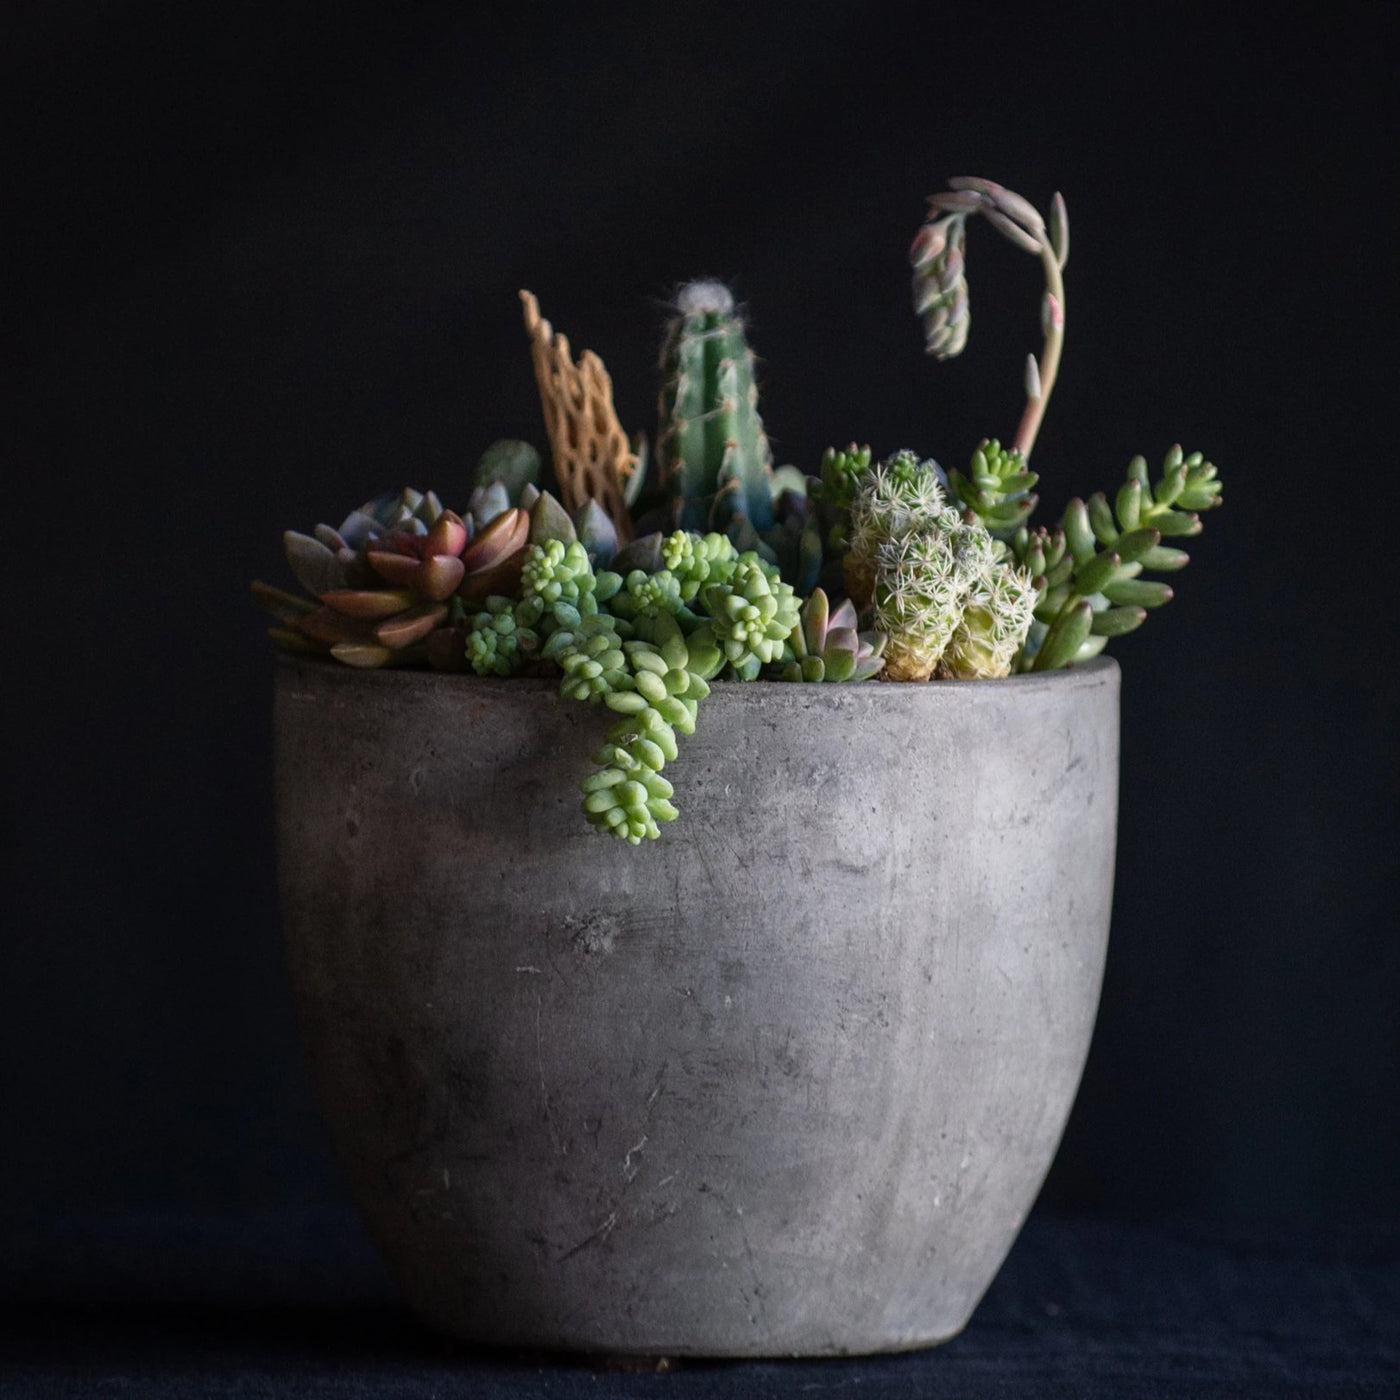 Premium Desert Terrarium - Flower Bar is a a concrete vessel filled with succulents and cacti and finished with a cholla branch